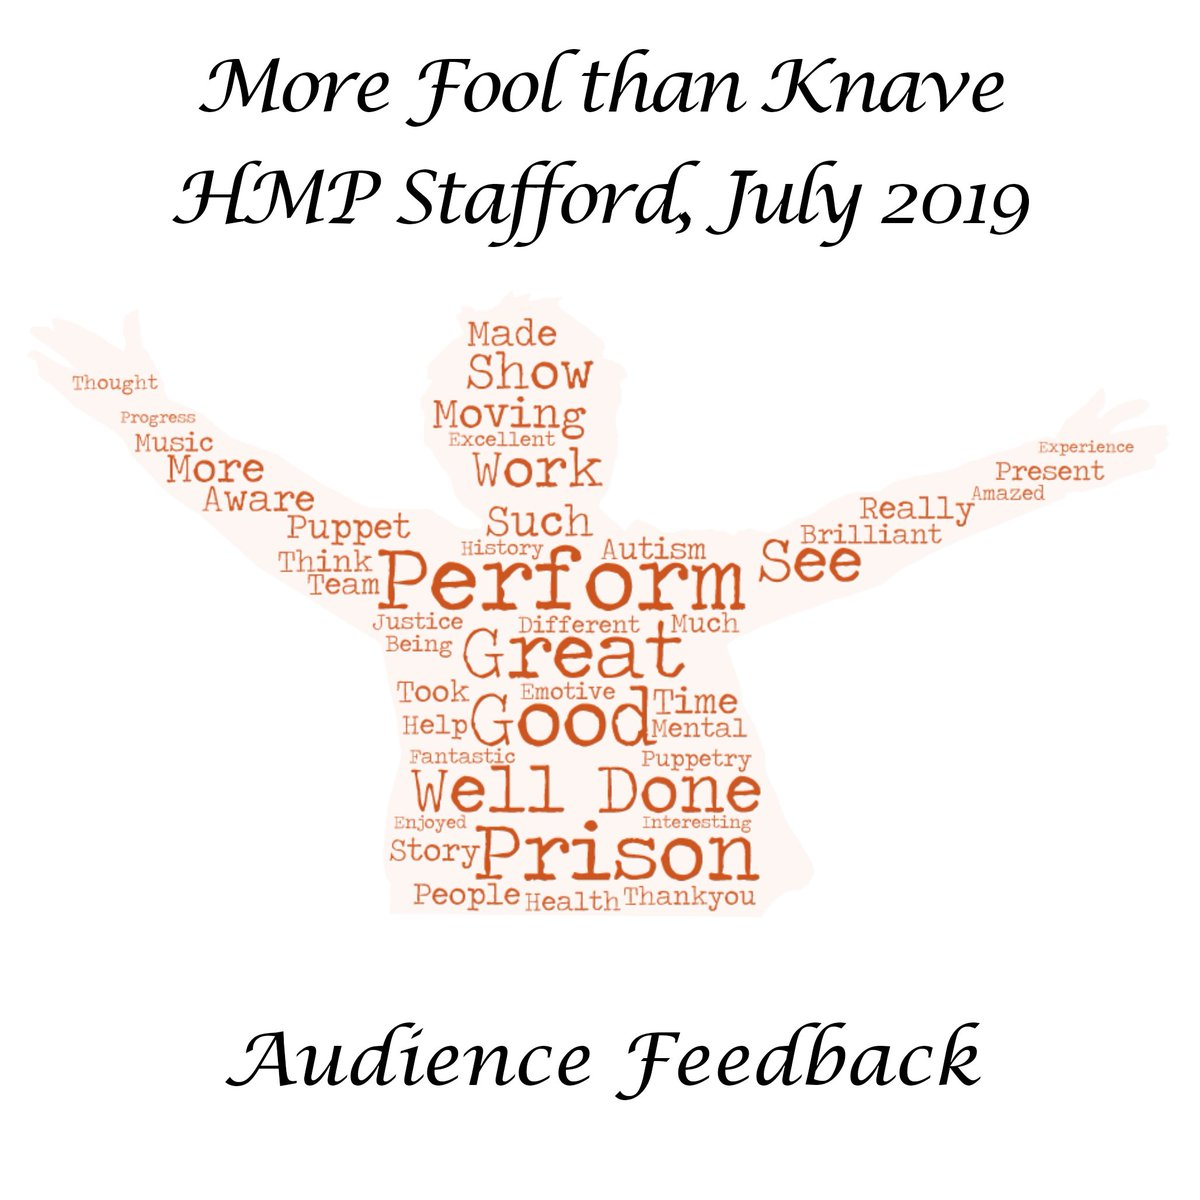 Audience feedback from More Fool than Knave, HMP Stafford, July 2019.